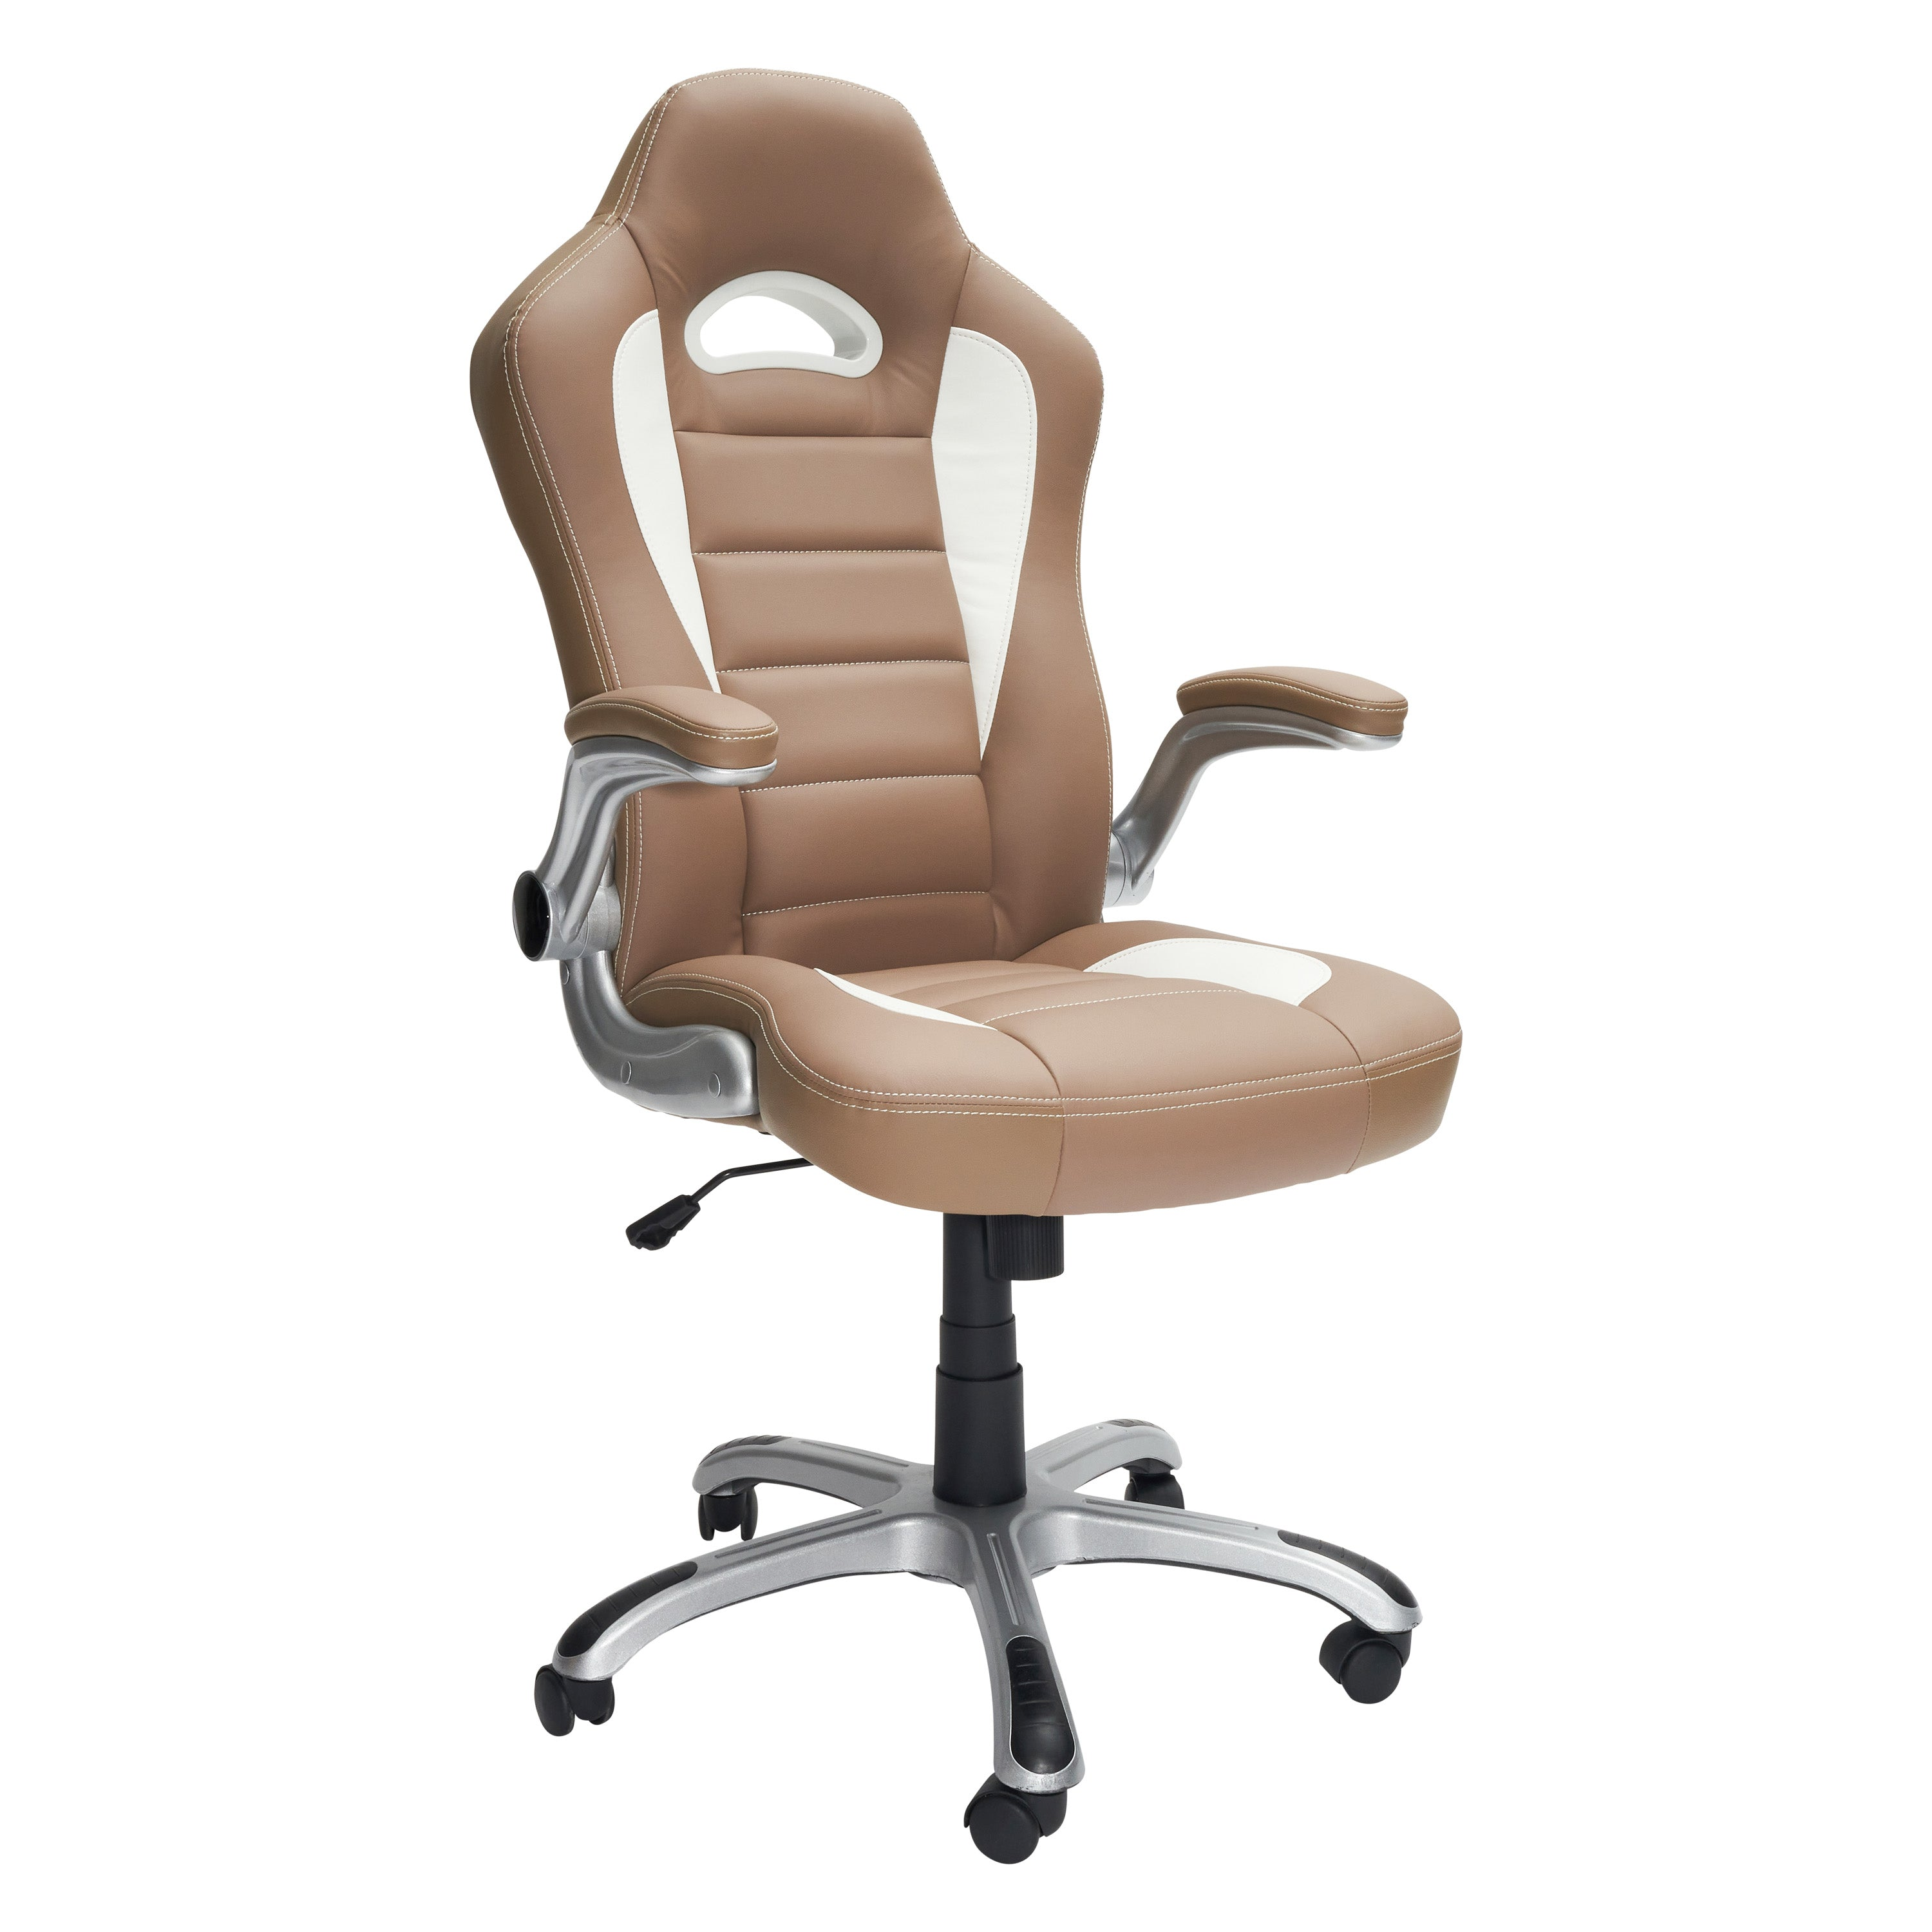 Techni Mobili High Back Executive Sport Race Office Chair With